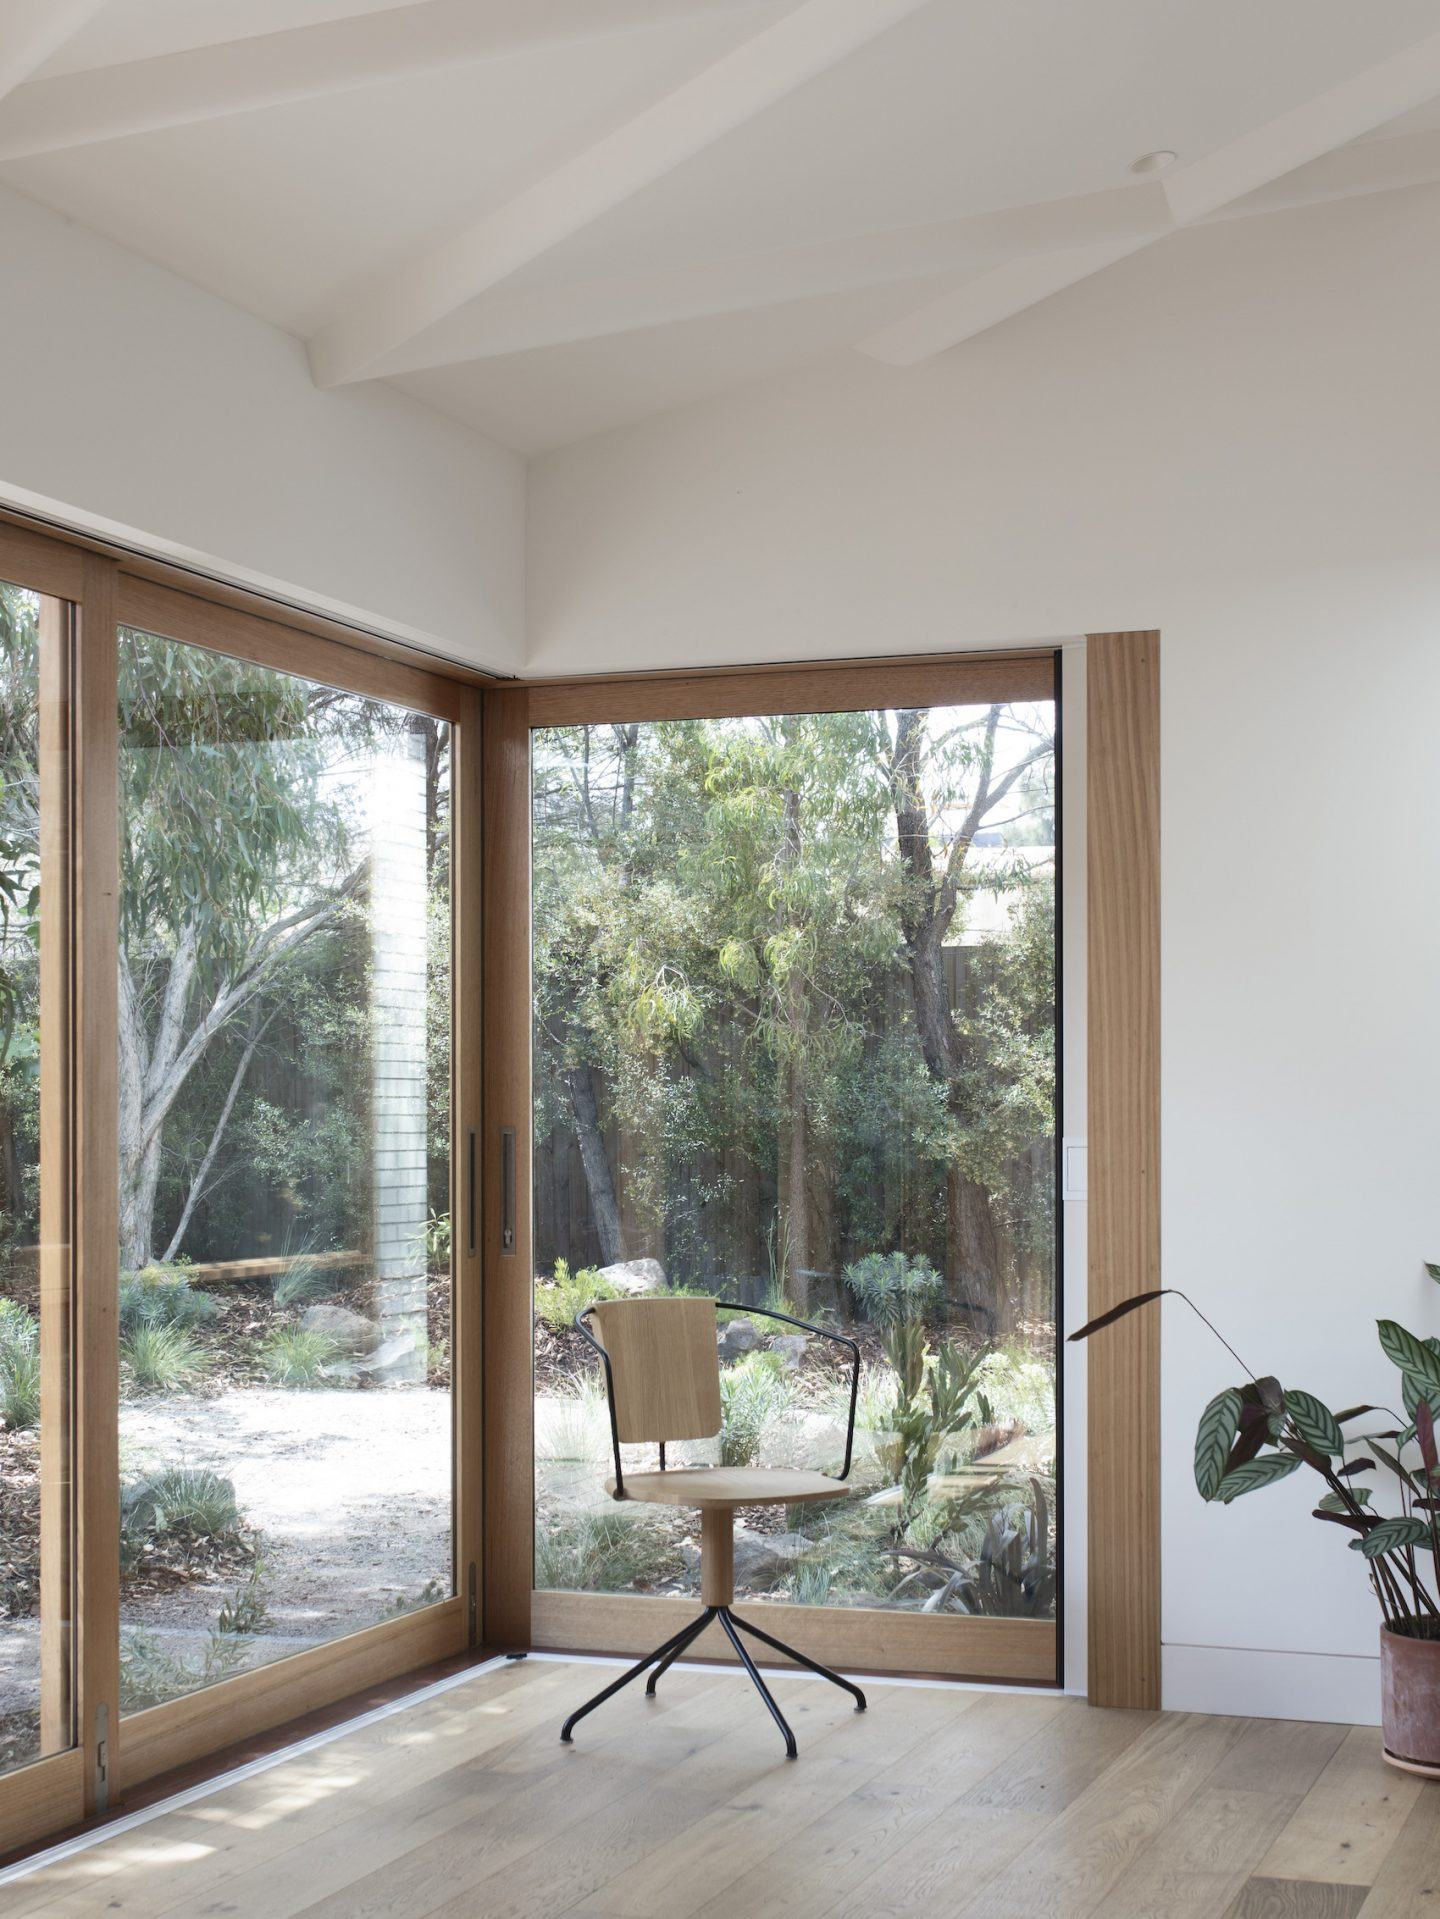 IGNANT-Architecture-Winwood-Mckenzie-Architecture-Brunswick-House-7